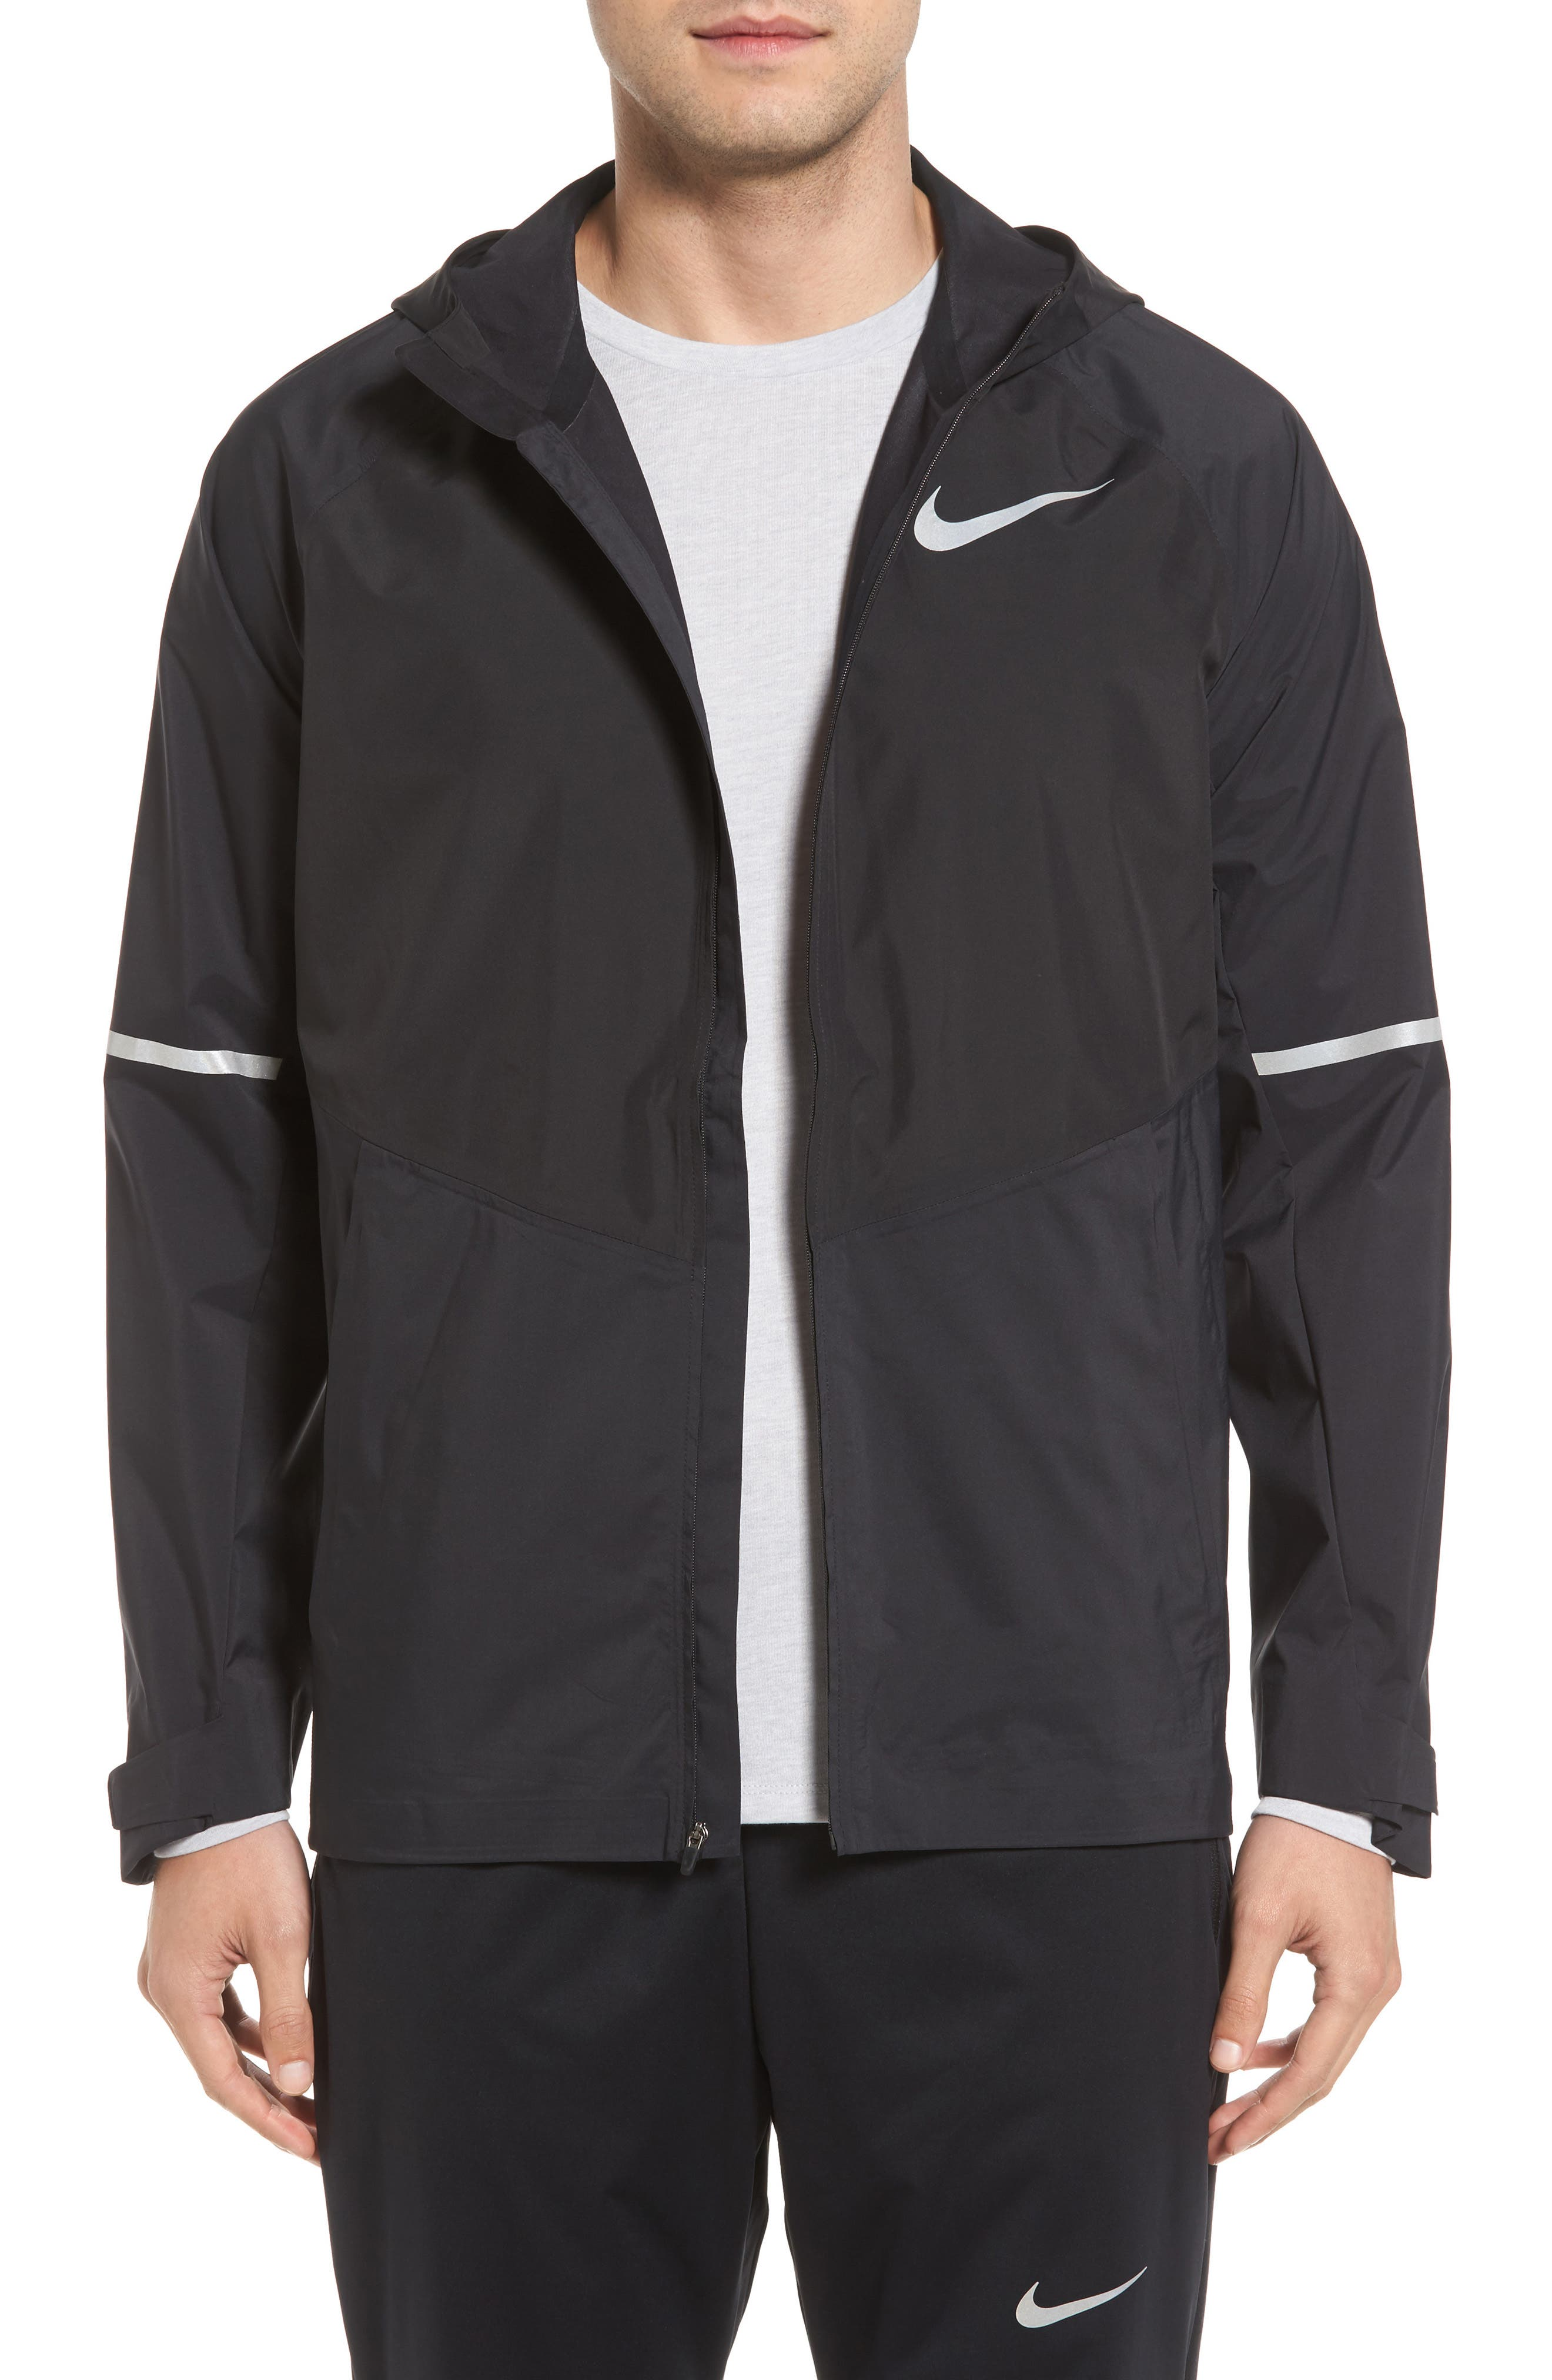 Nike Zonal AeroShield Hooded Running Jacket